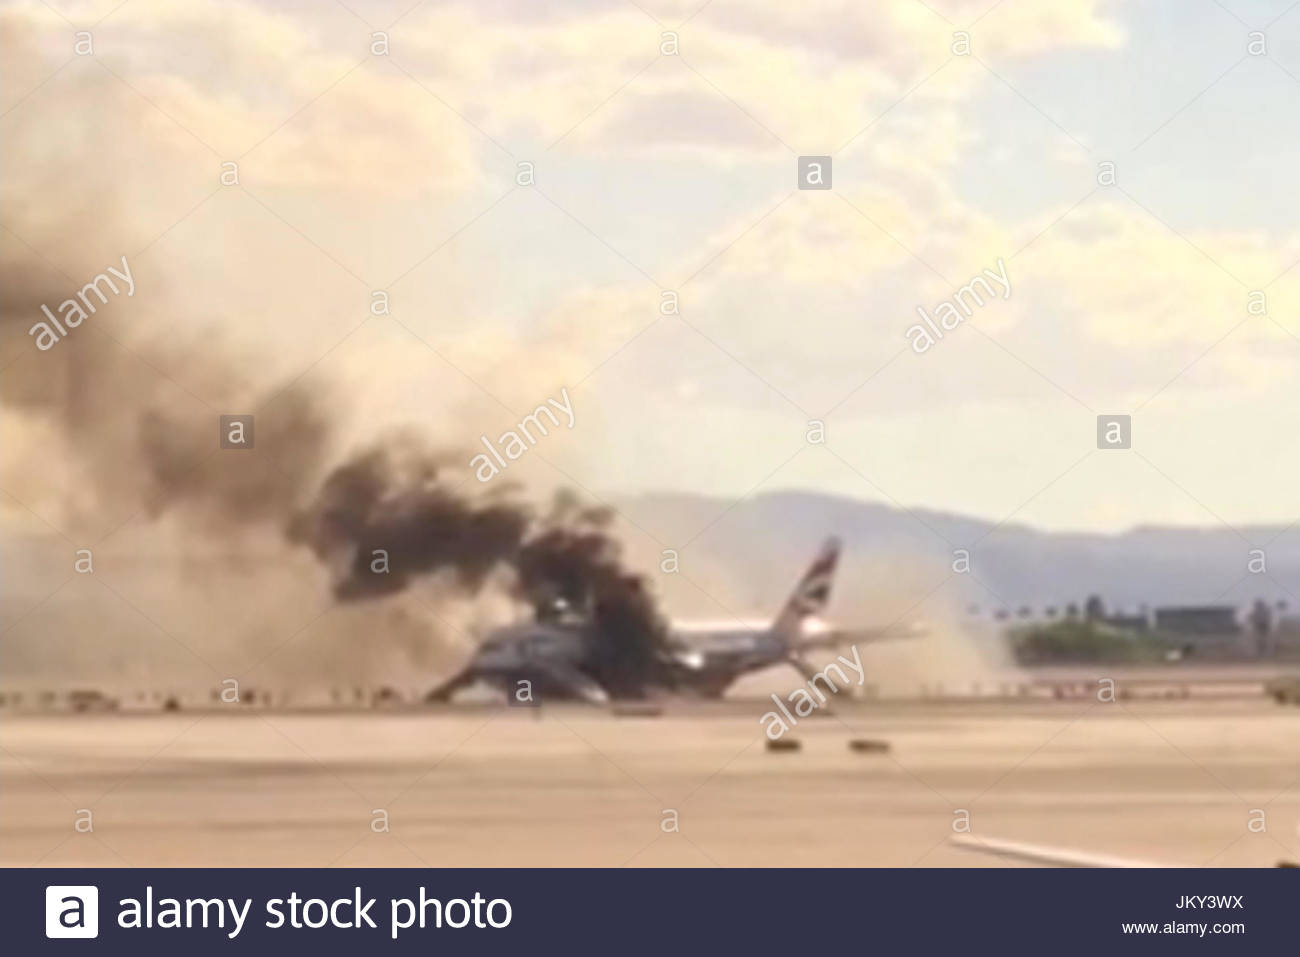 British Airways flight 2276. British Airways flight 2276 on fire on the  runway at Las Vegas airport on September 8, 2015. The incident occurred  shortly ...